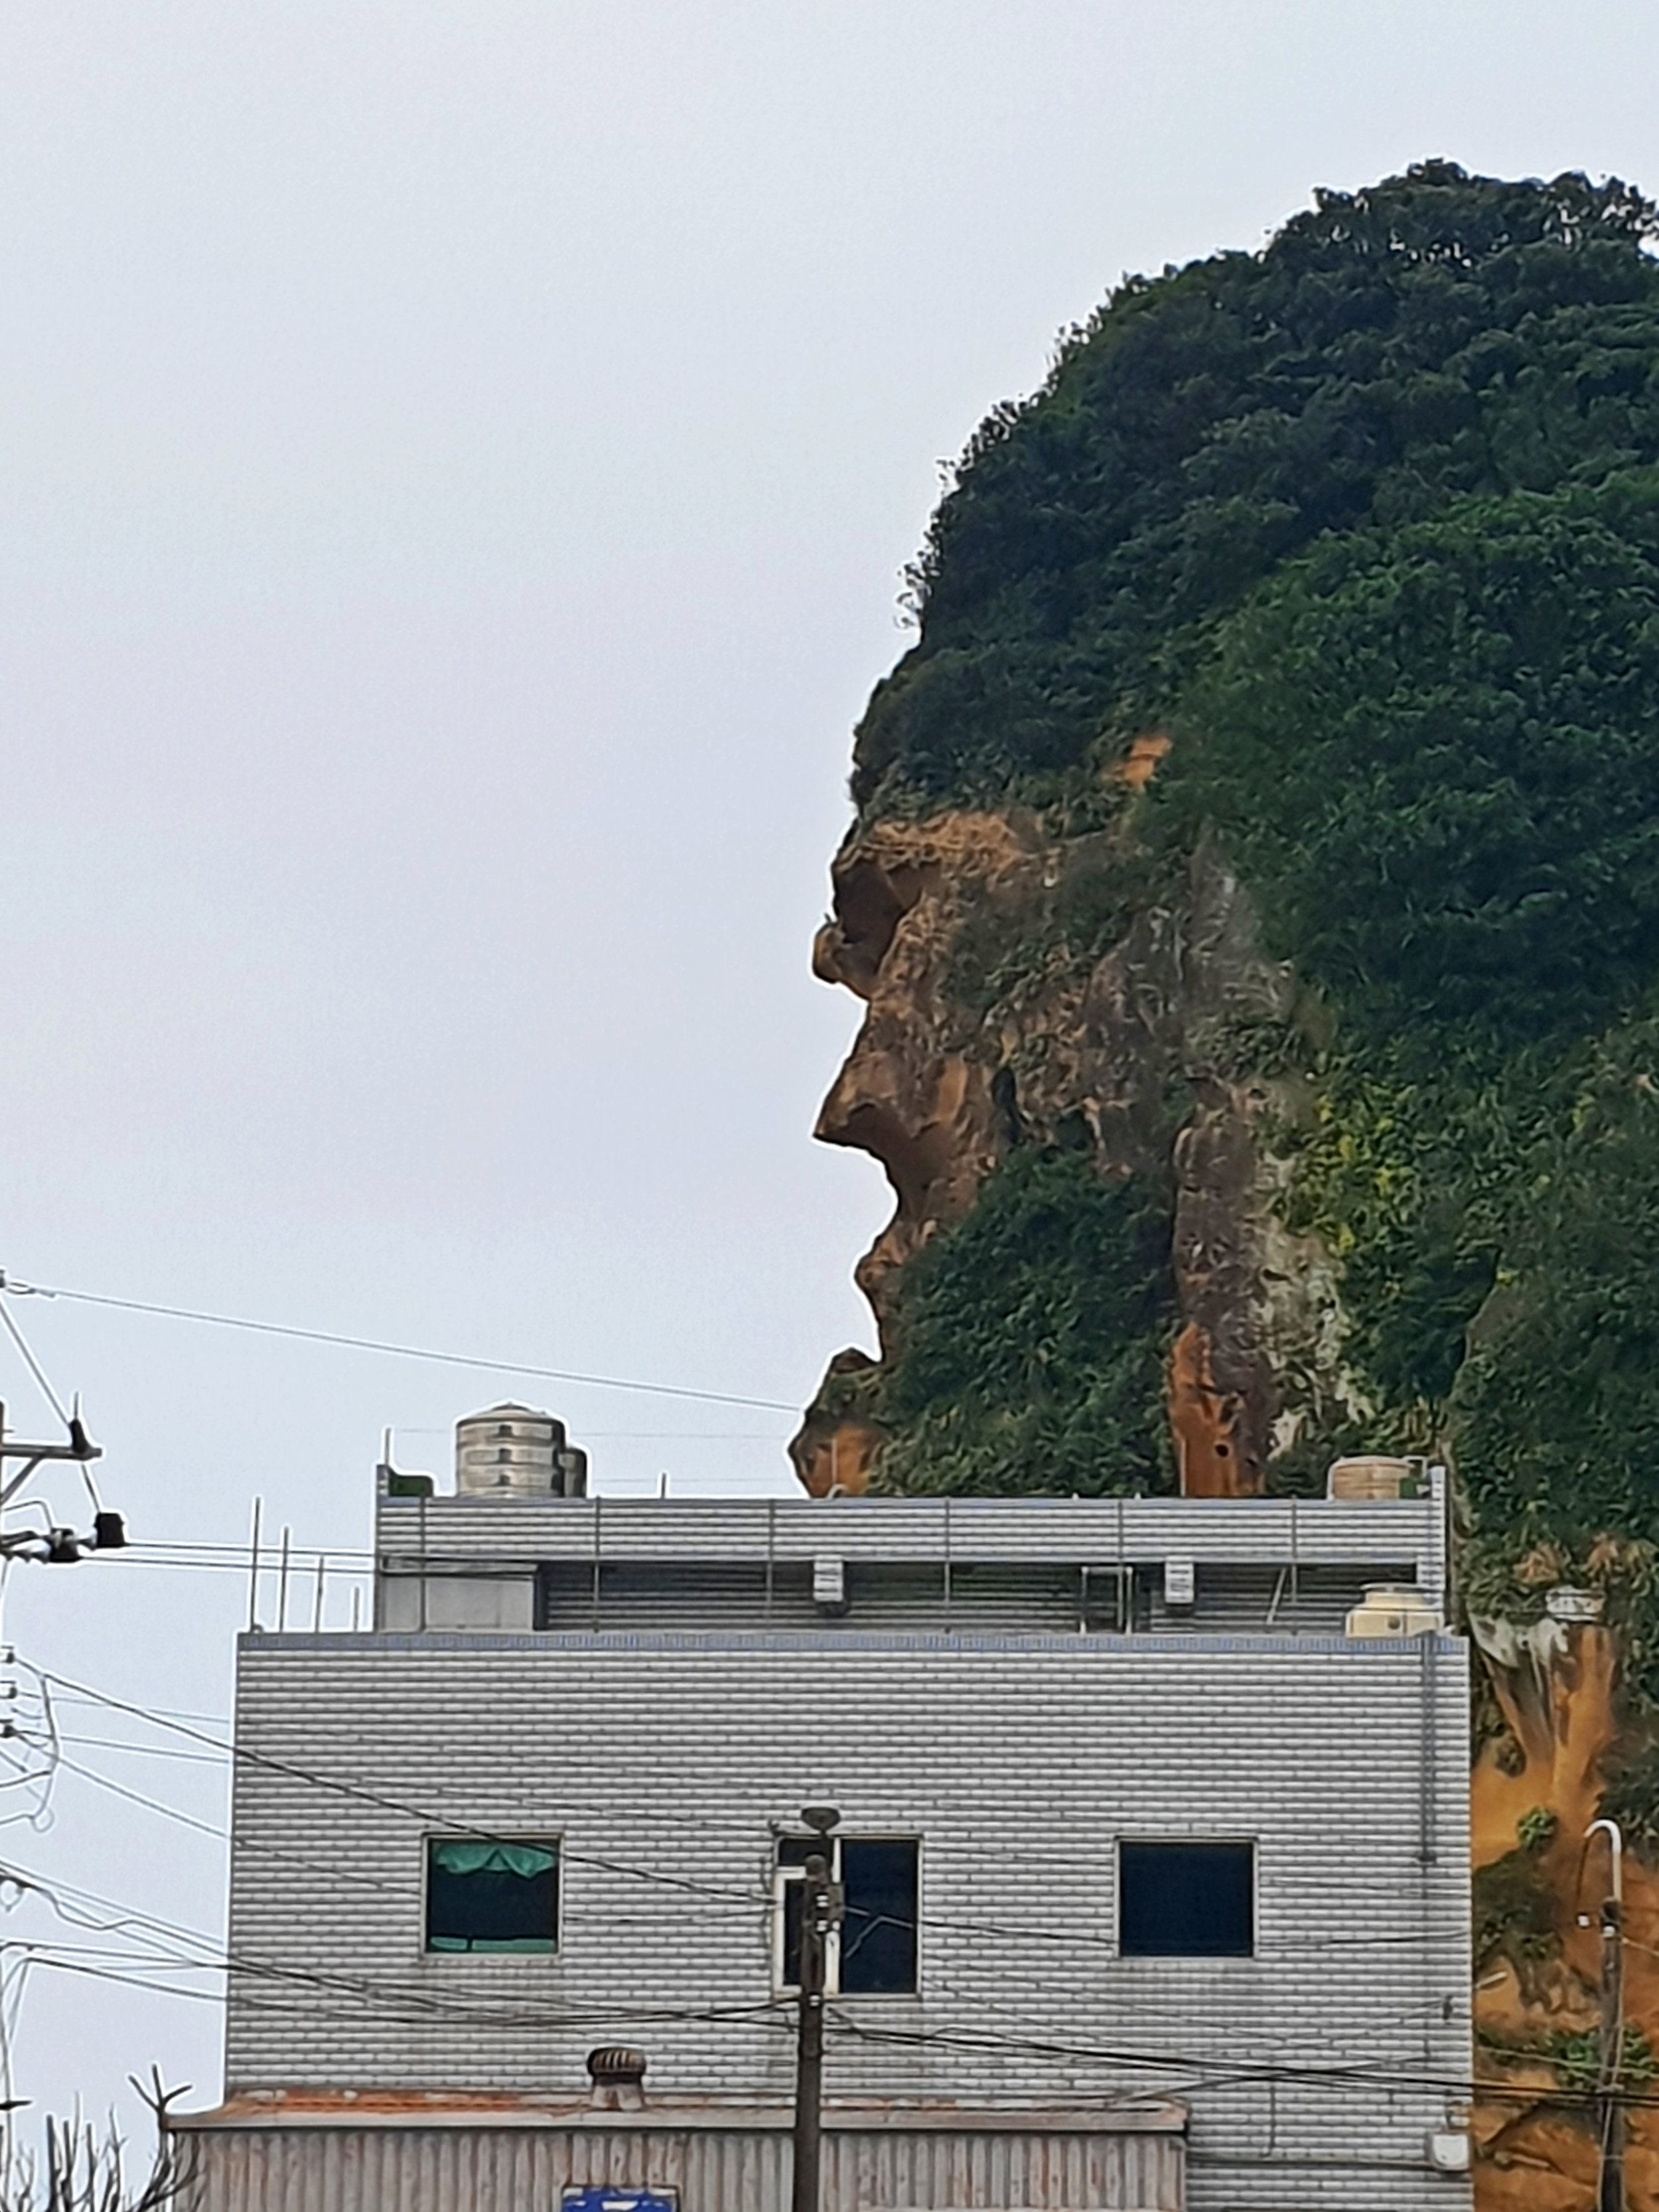 This is known as Indian Chief Rock